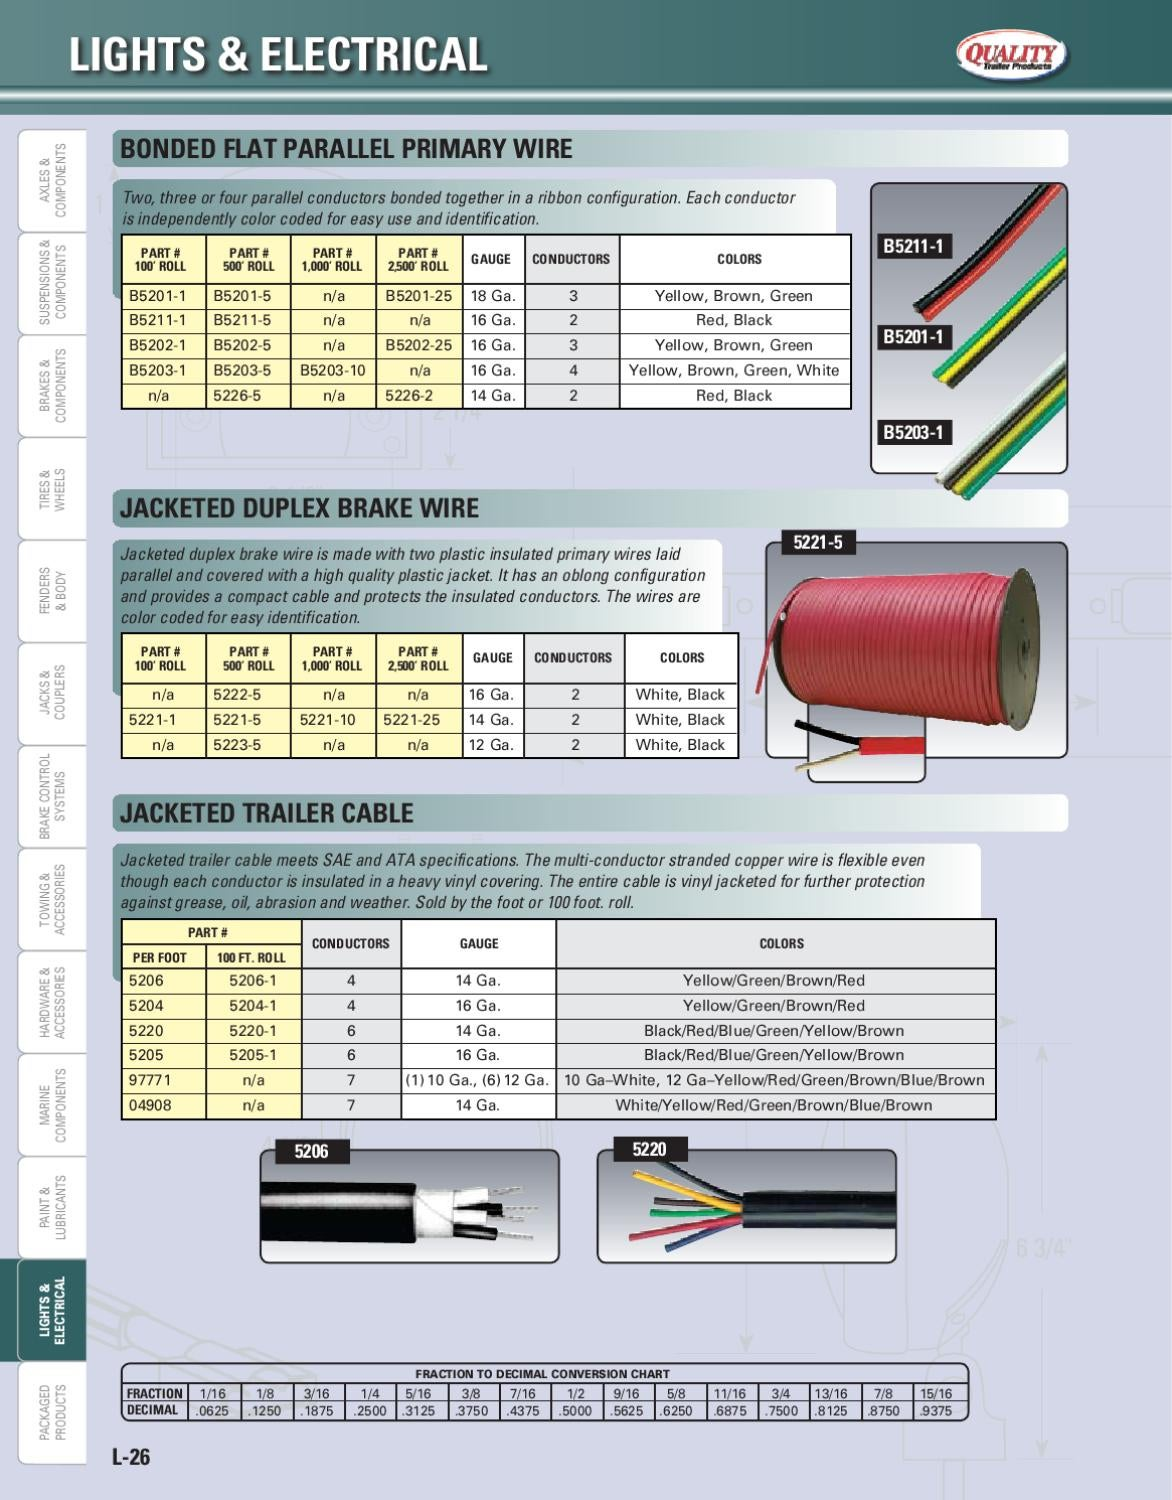 Quality Trailer Parts Catalog by Rockwell American - issuu